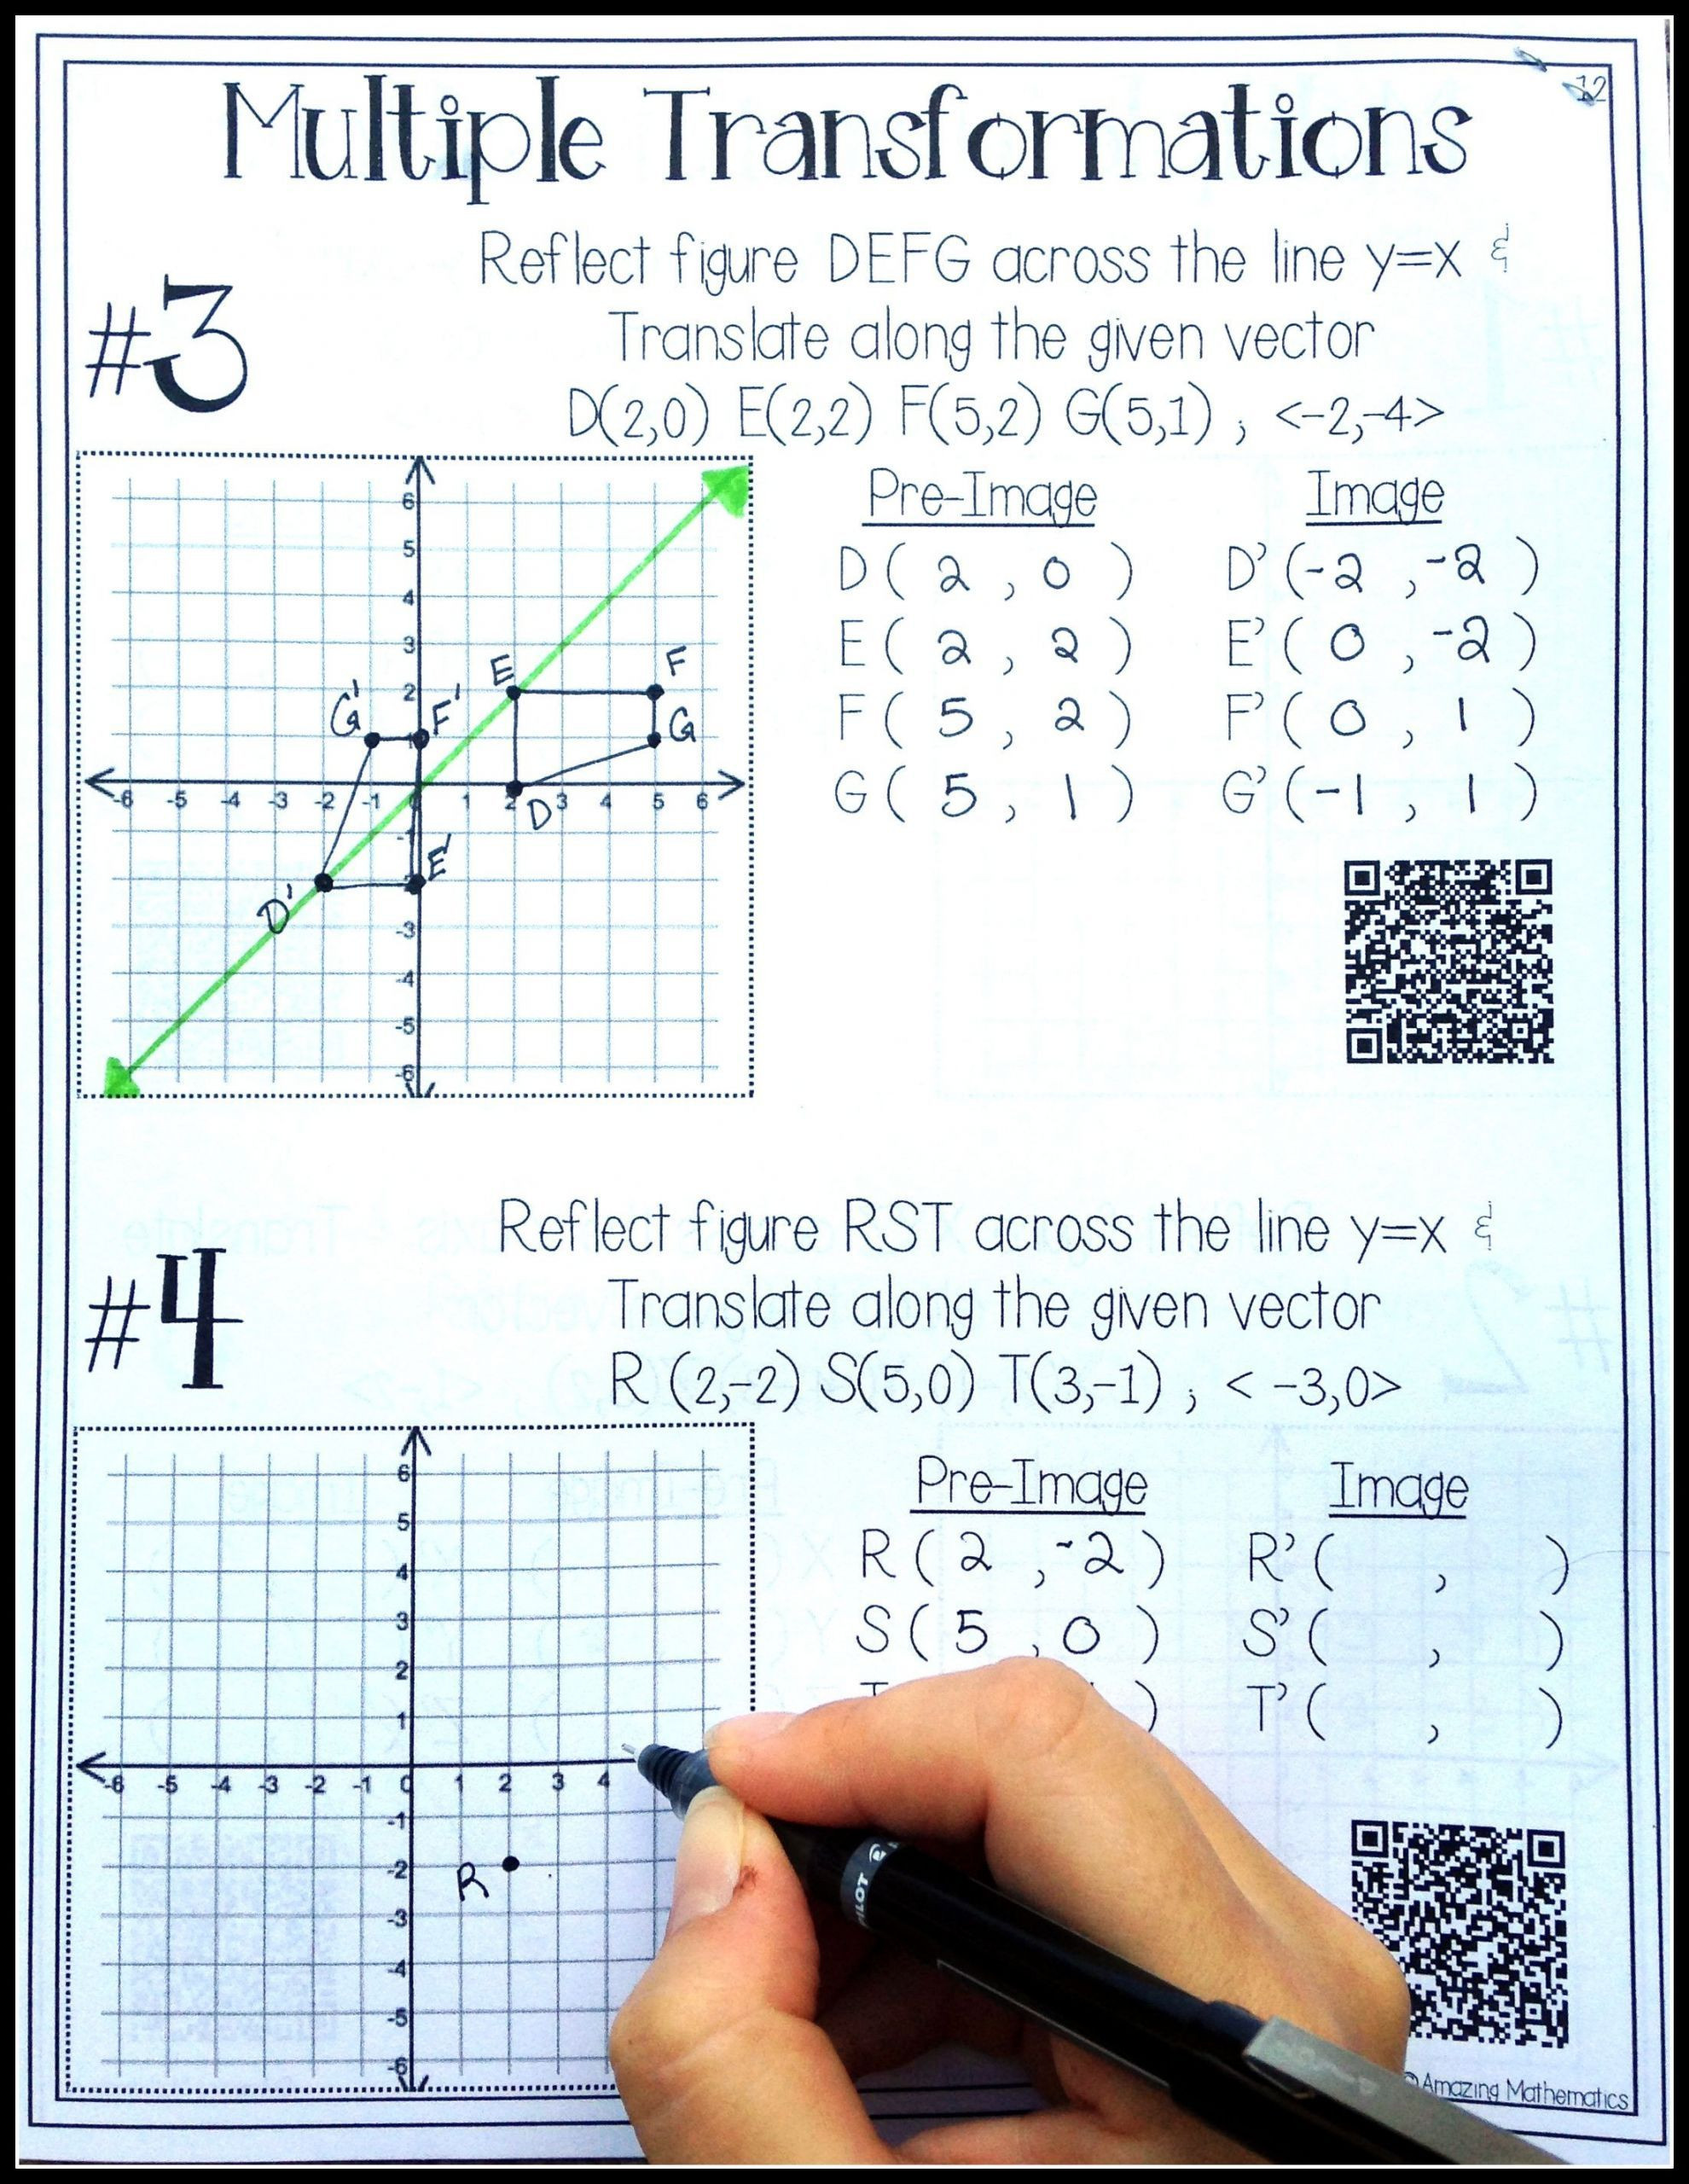 Translations Math Worksheets 2 Translations Math Worksheets 2 In 2020 with Images